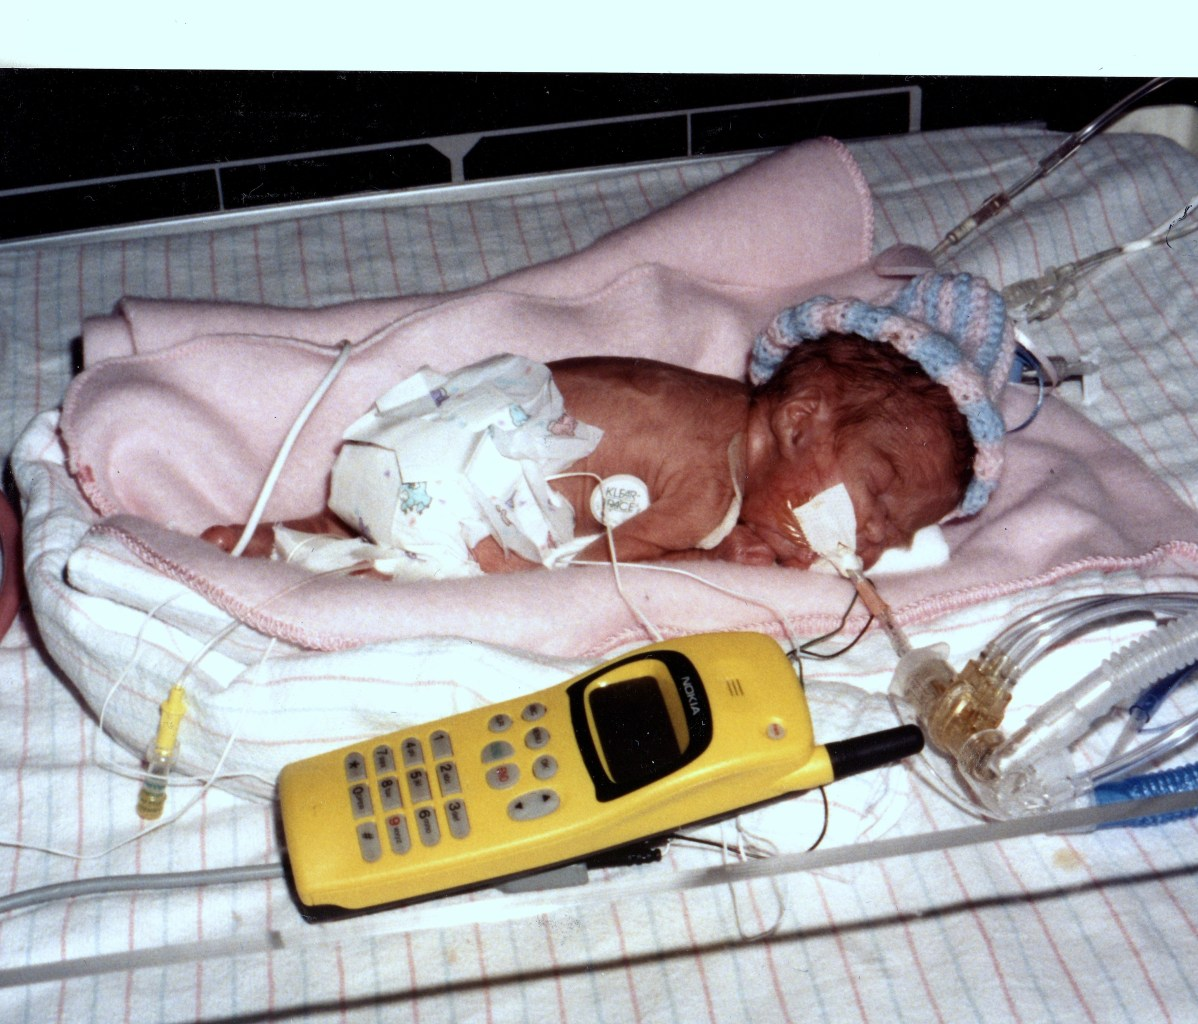 Image: Louisa, micro-preemie, lying next to a cell phone at about the same size